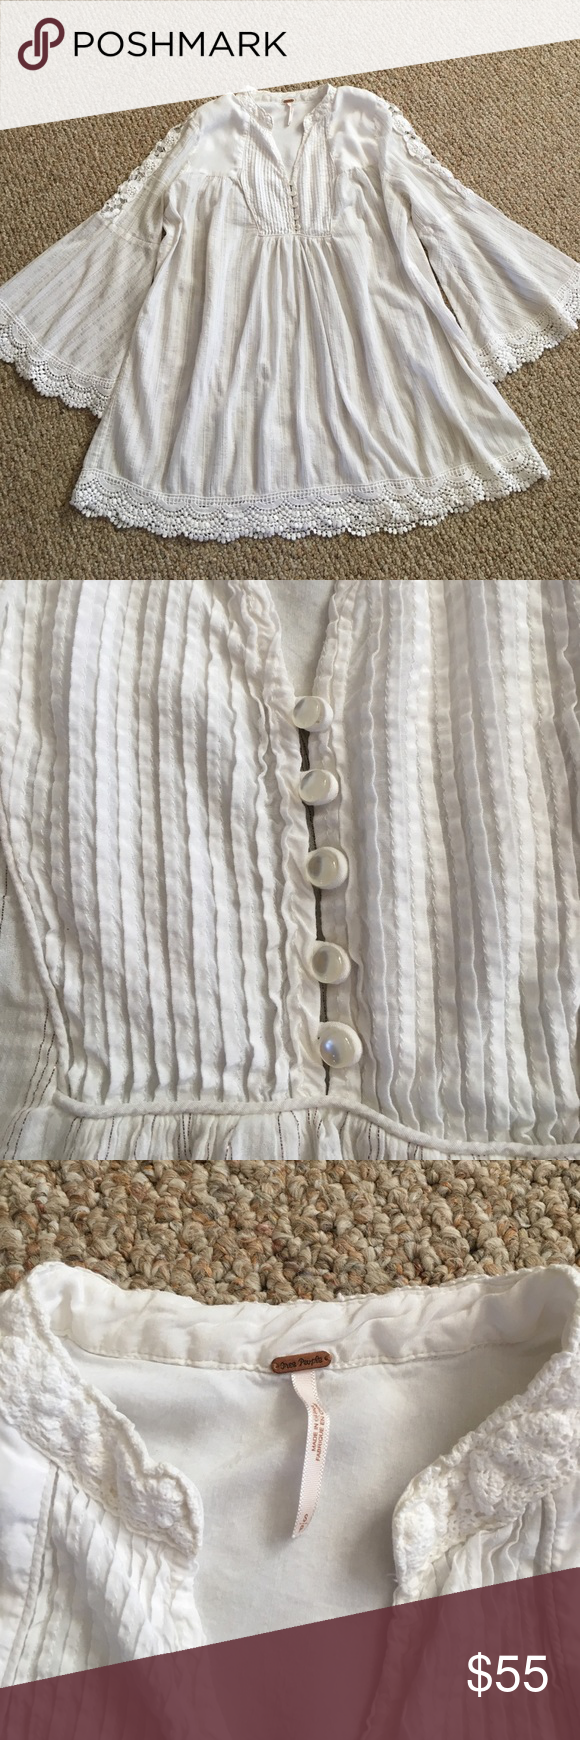 """Free People Bohemian Style Top Beautiful classic top. White with metallic threads. A lot going on with this. Bell sleeves crocheted on the ends. Crocheted as well on the upper arms and bottom hem. There is one spot I found where it will need repairing. It's a gauzy feel and the metallic threads are bubbling up throughout. I tried to capture that in a picture. Size small. 29"""" long. 21"""" pit to pit. Free People Tops Tunics"""